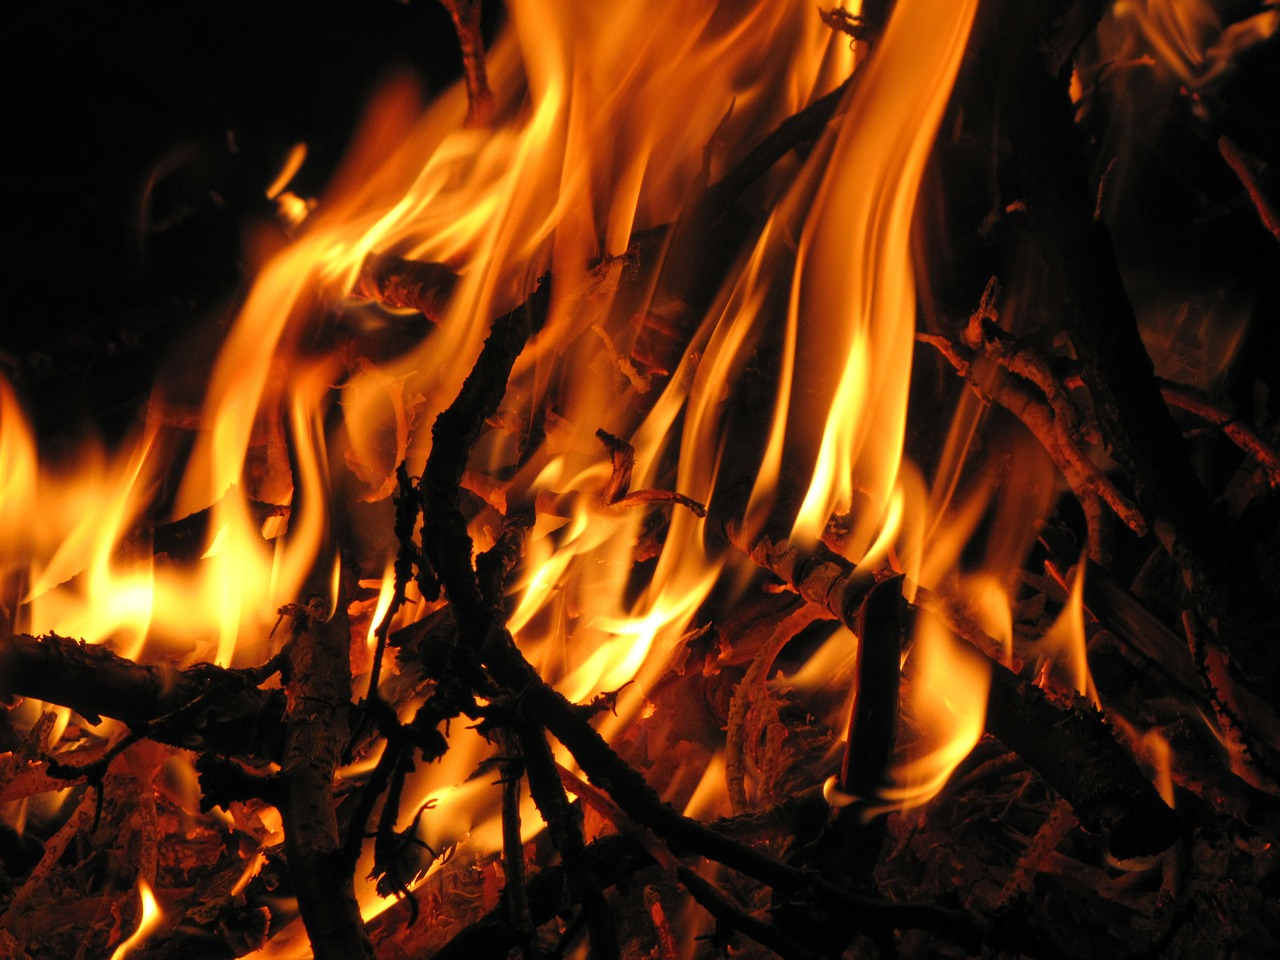 fire night glow free photo